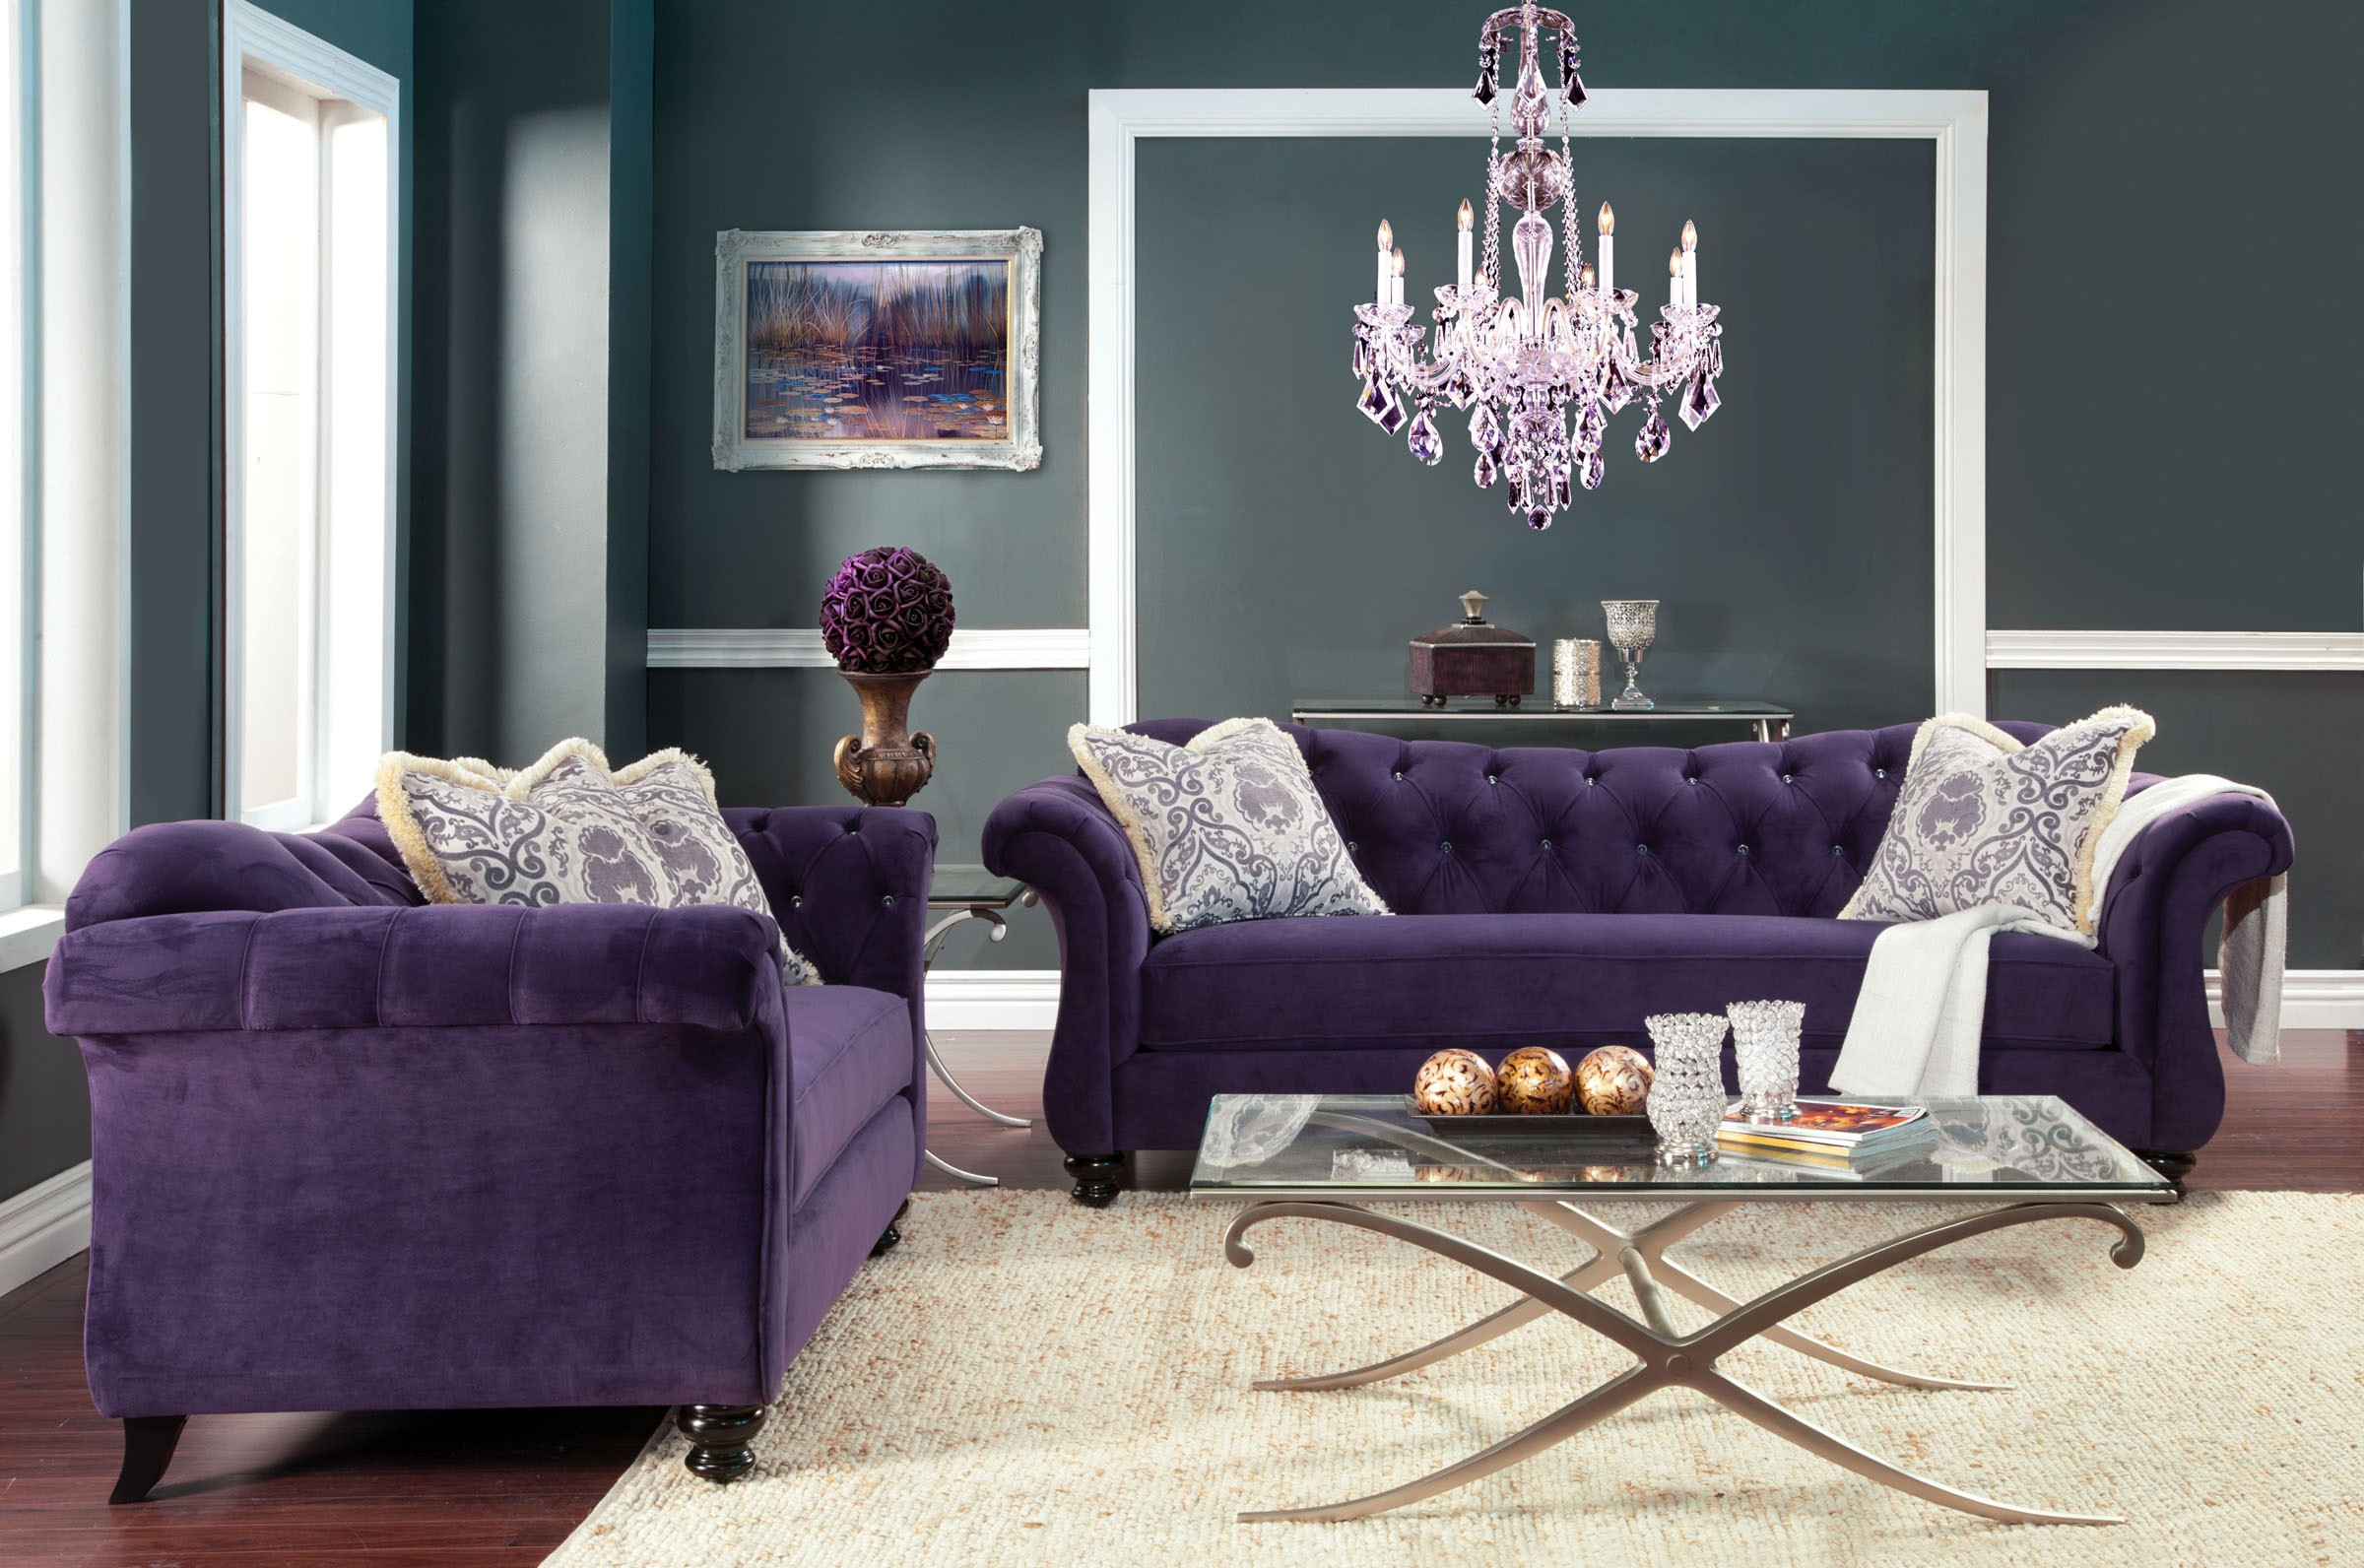 Warm Purple Sofa to Complete Your Living Room Decor: Purple Chesterfield Sofa | Plum Colored Sofa | Purple Sofa